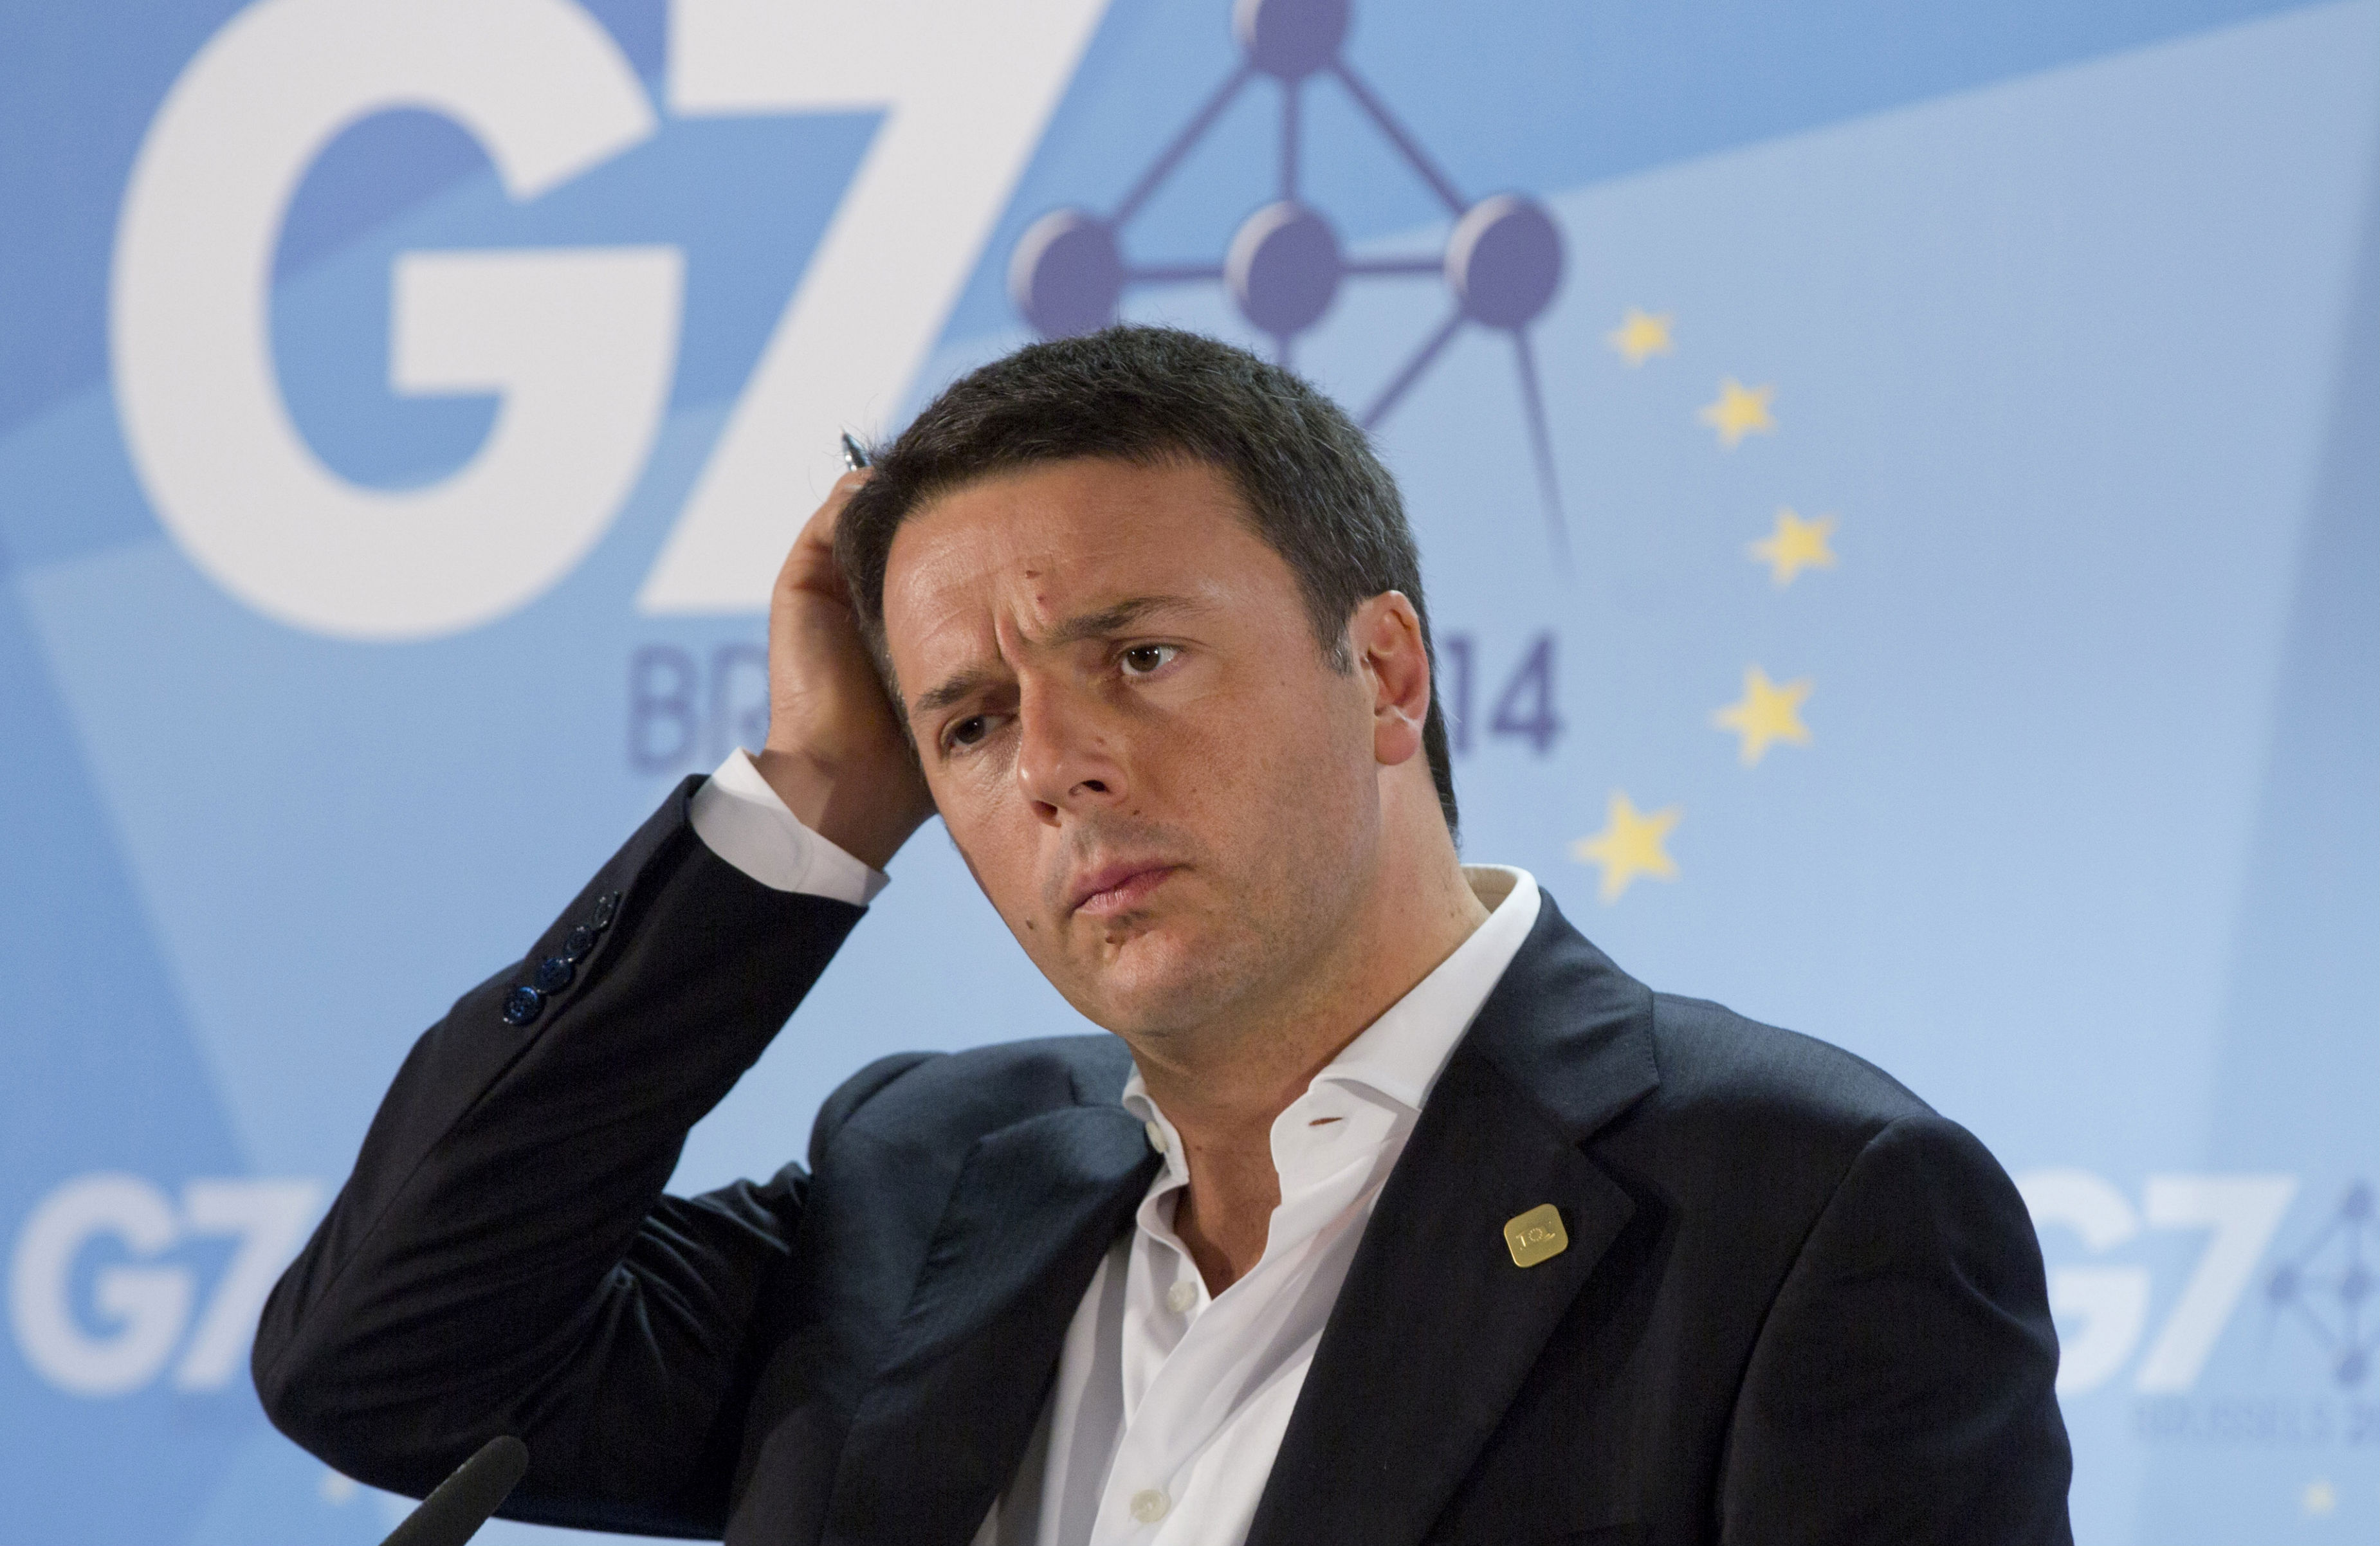 Renzi Matteo is an ideal example of the development of the third way in politics